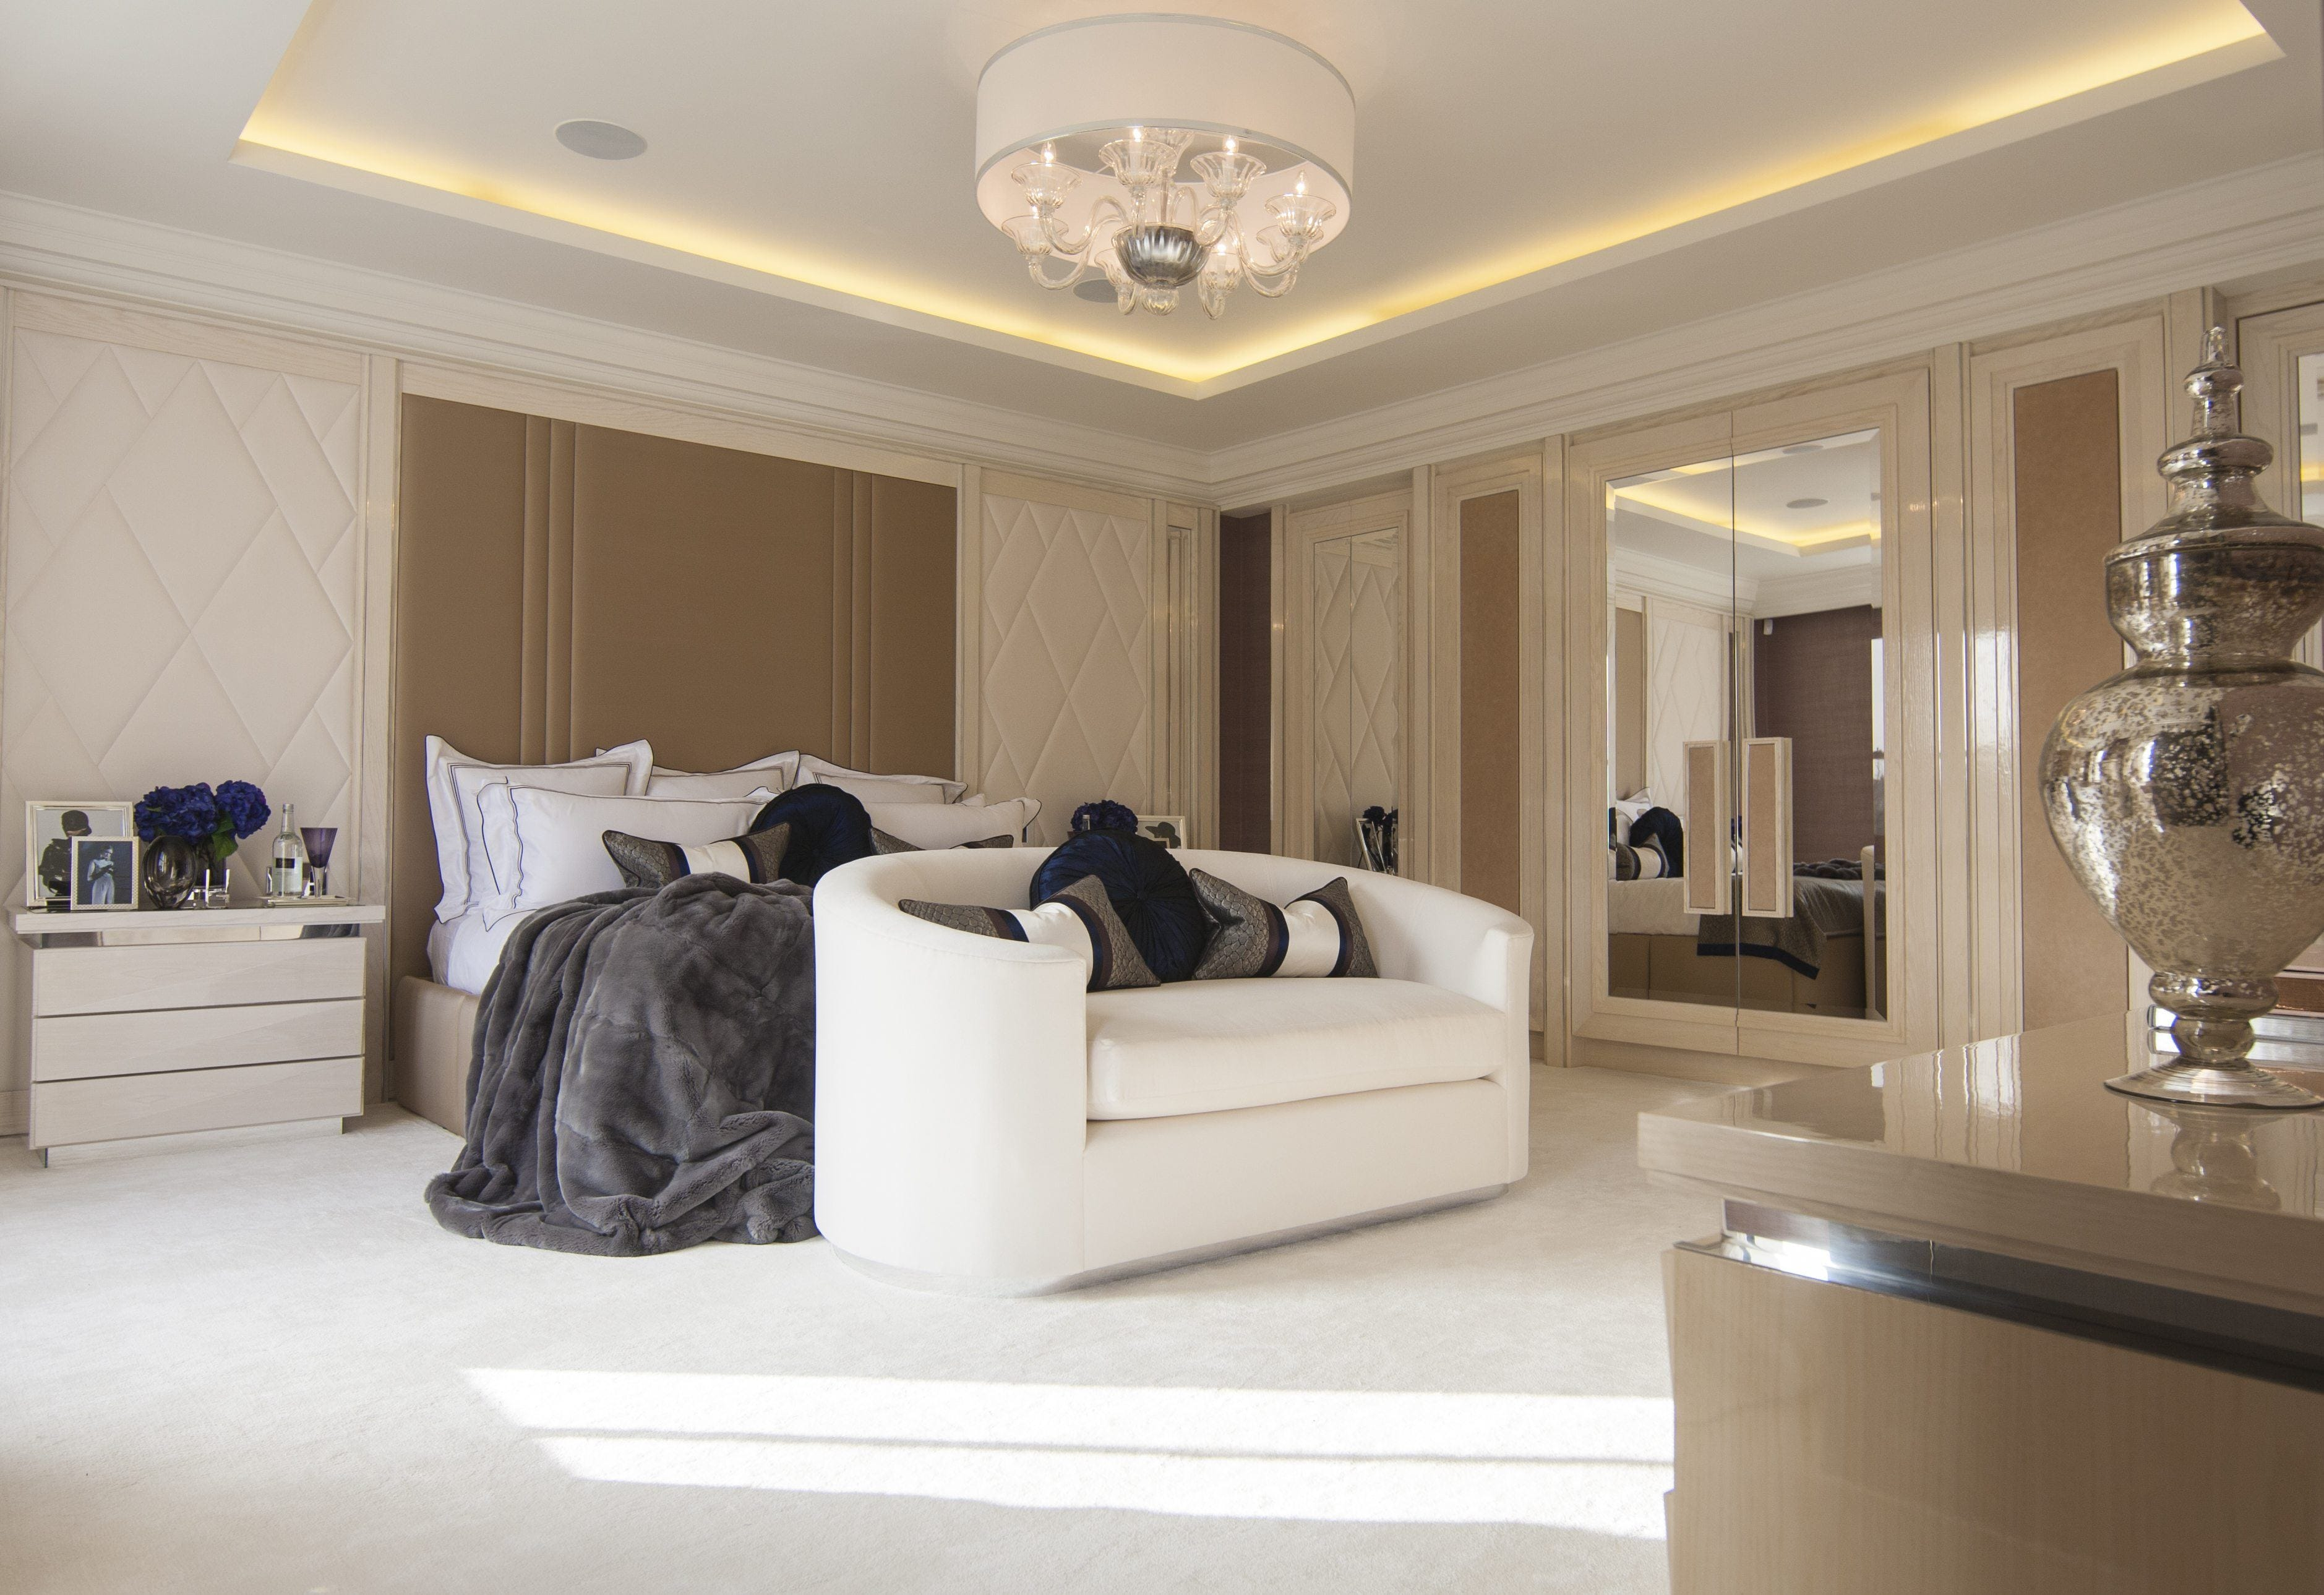 bespoke bedroom design luxury furniture by Juliettes Interiors